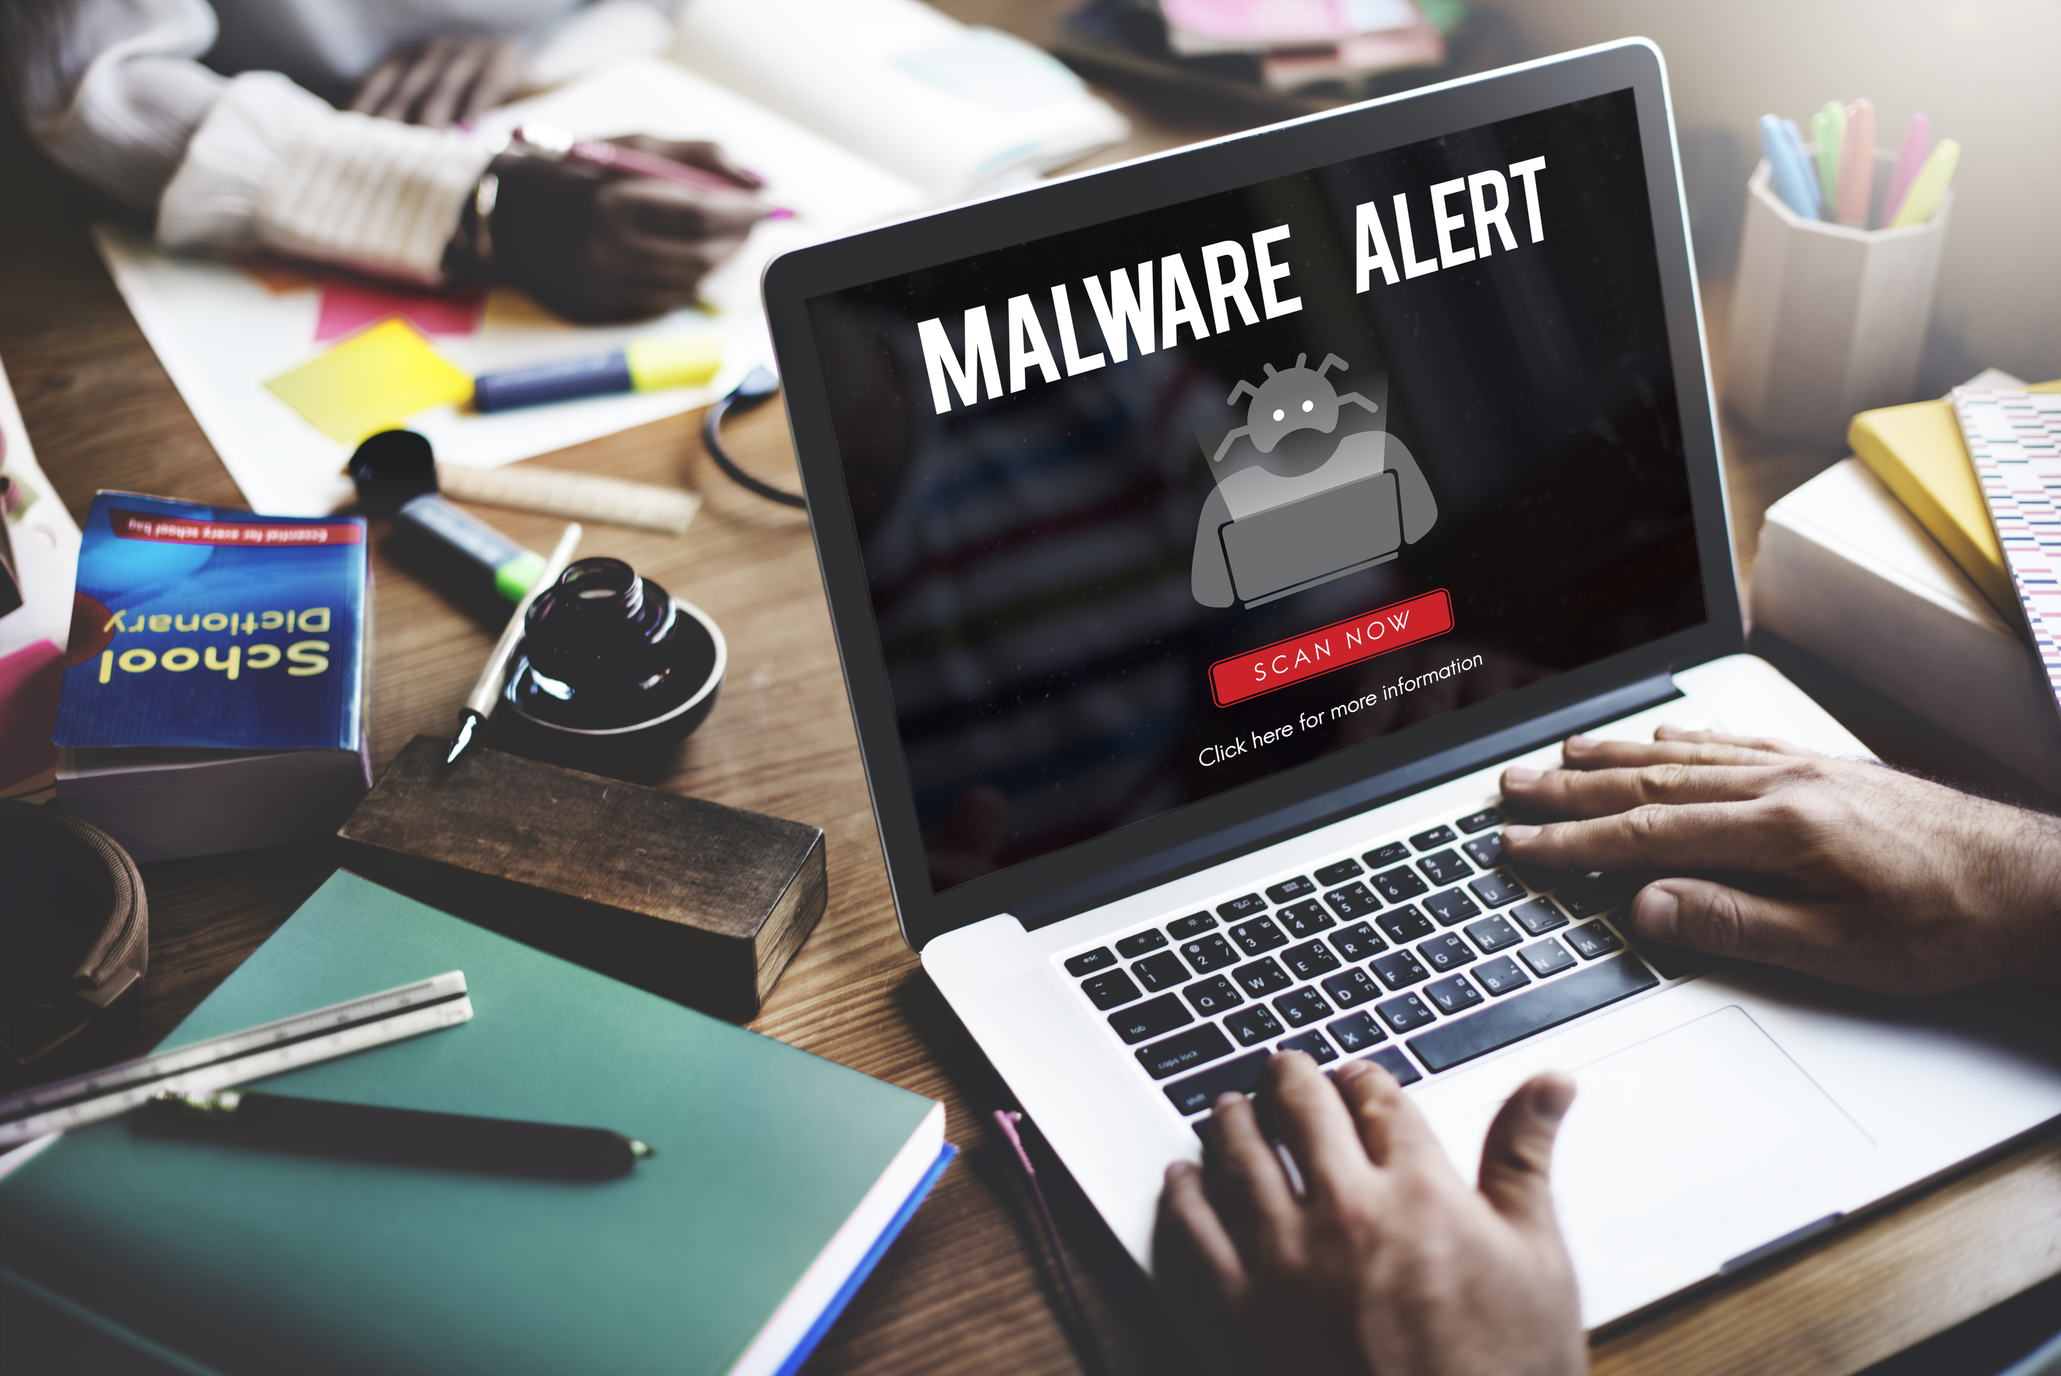 What You Should Know About the Trojan Malware